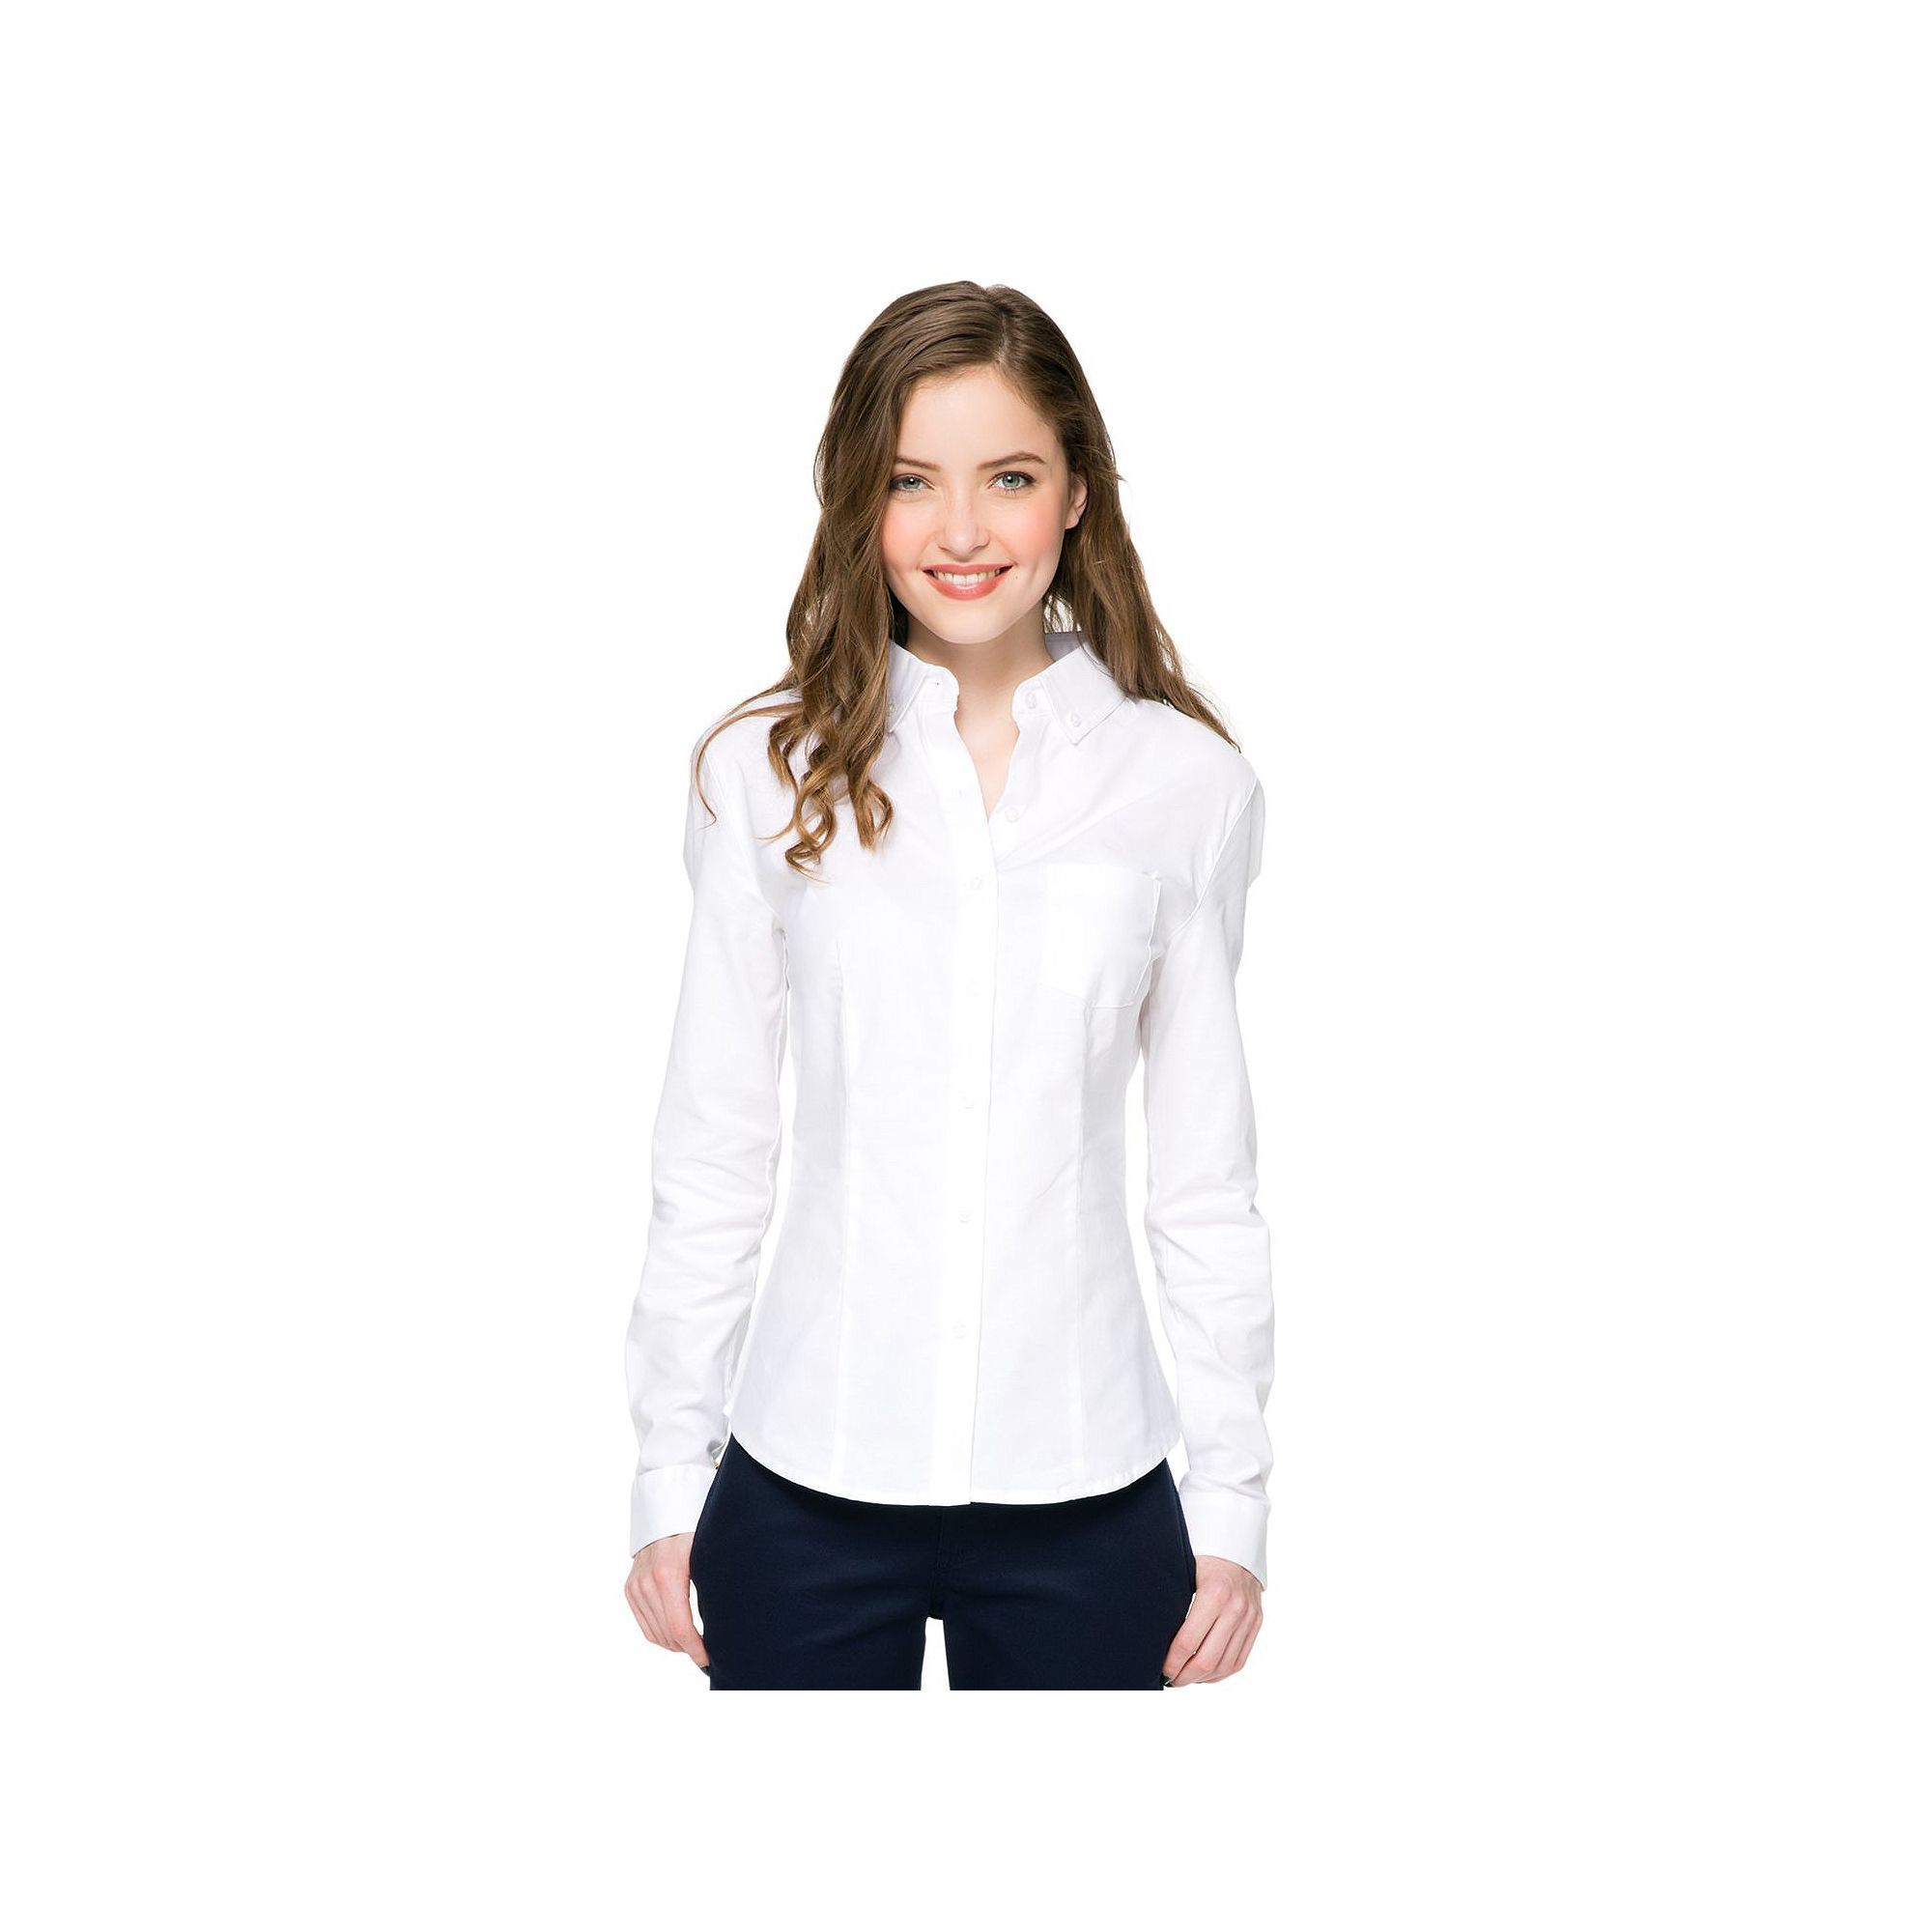 f298957f Lee Uniforms Juniors' Long Sleeve Stretch Oxford Top, Teens, Size: Medium,  White